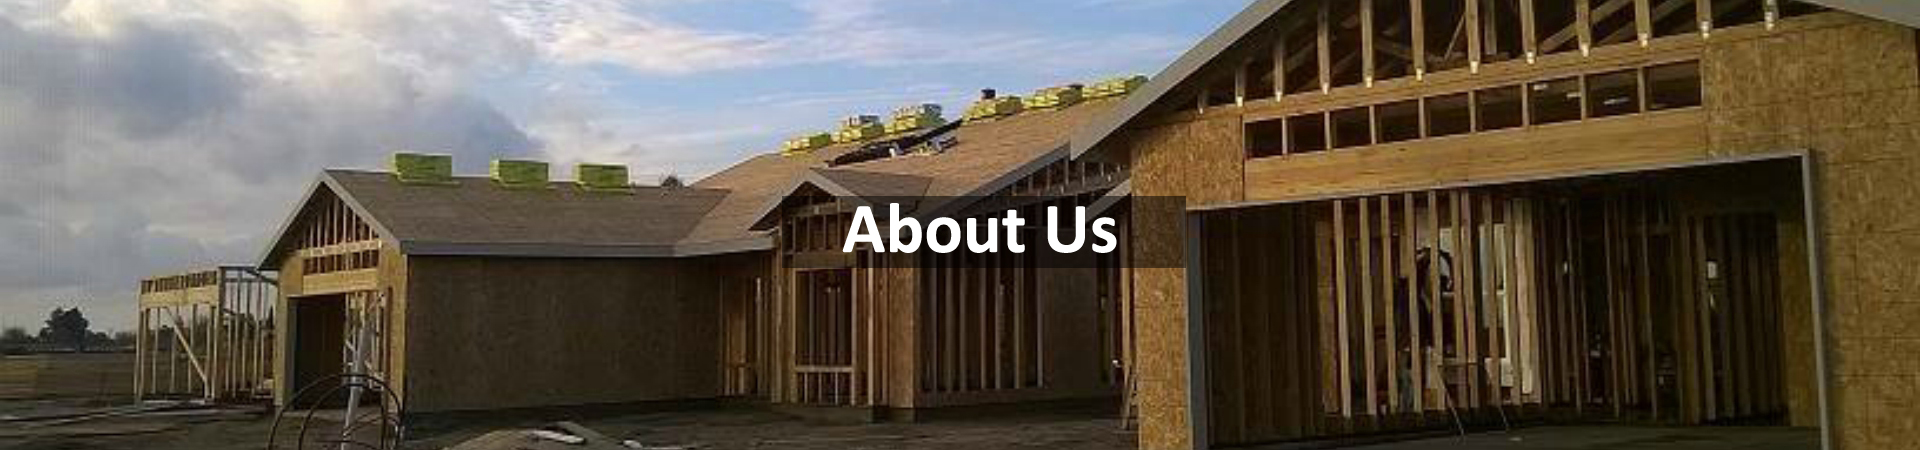 About Us - All Valley Housing Services